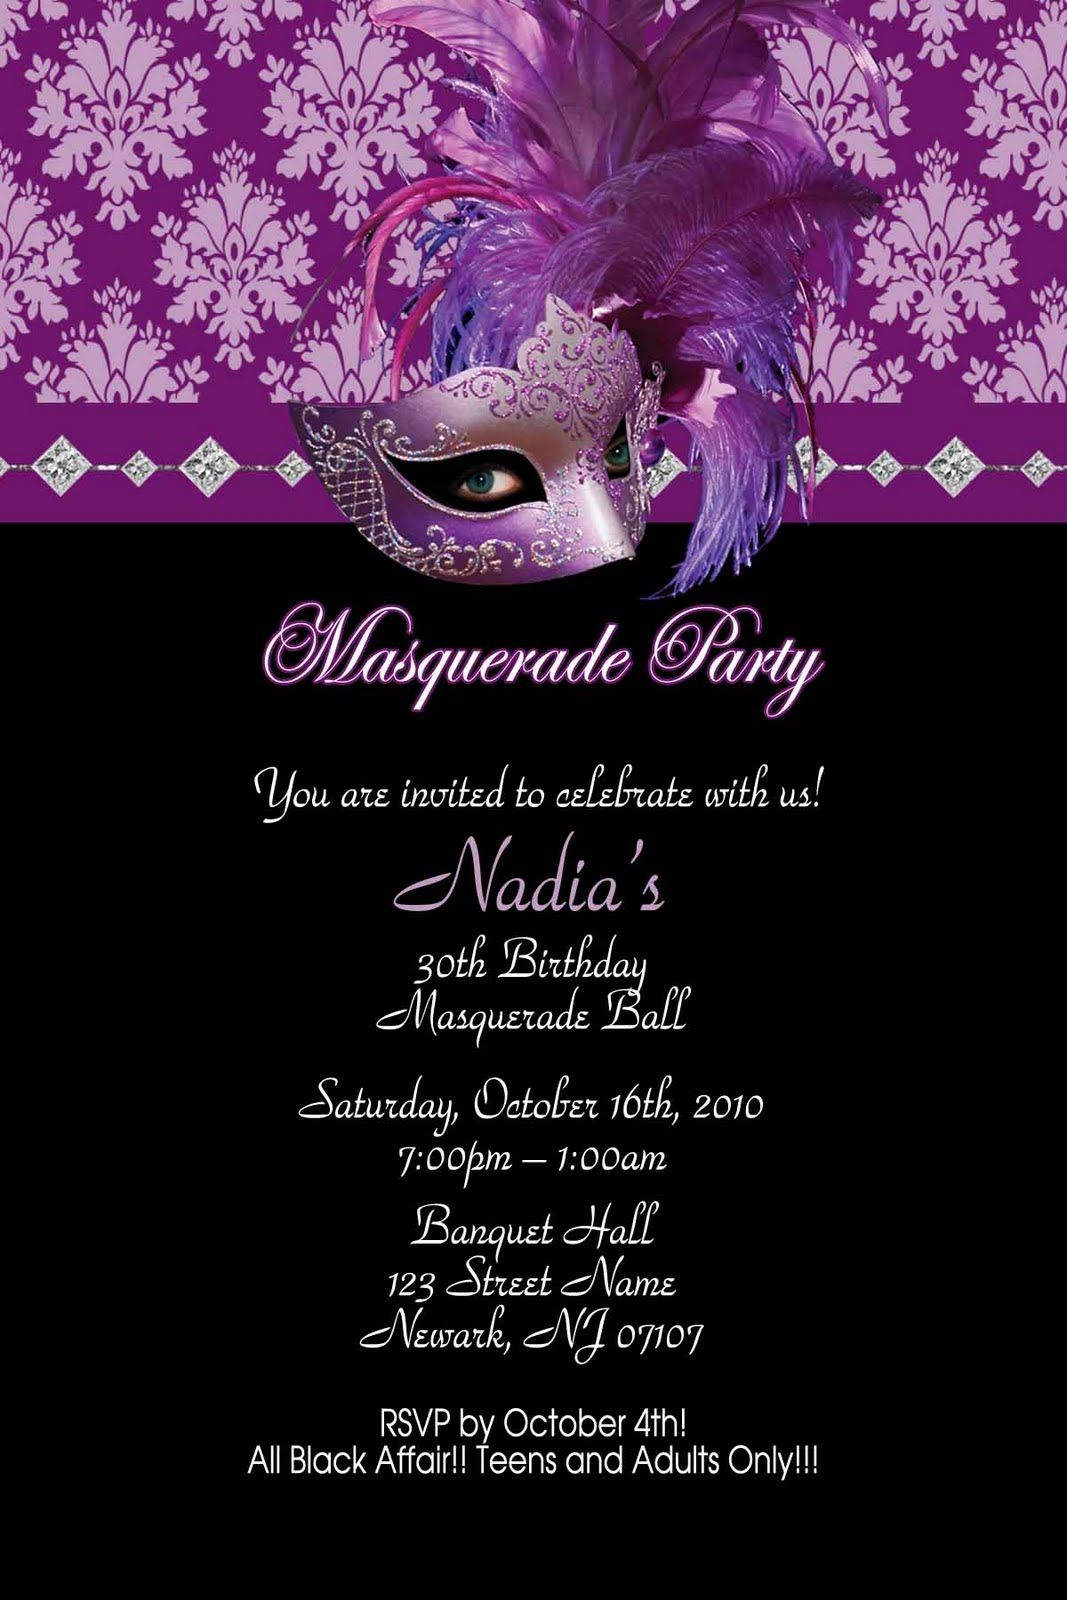 invitations for quinceaneras | ... some Colorful Invitations for ...